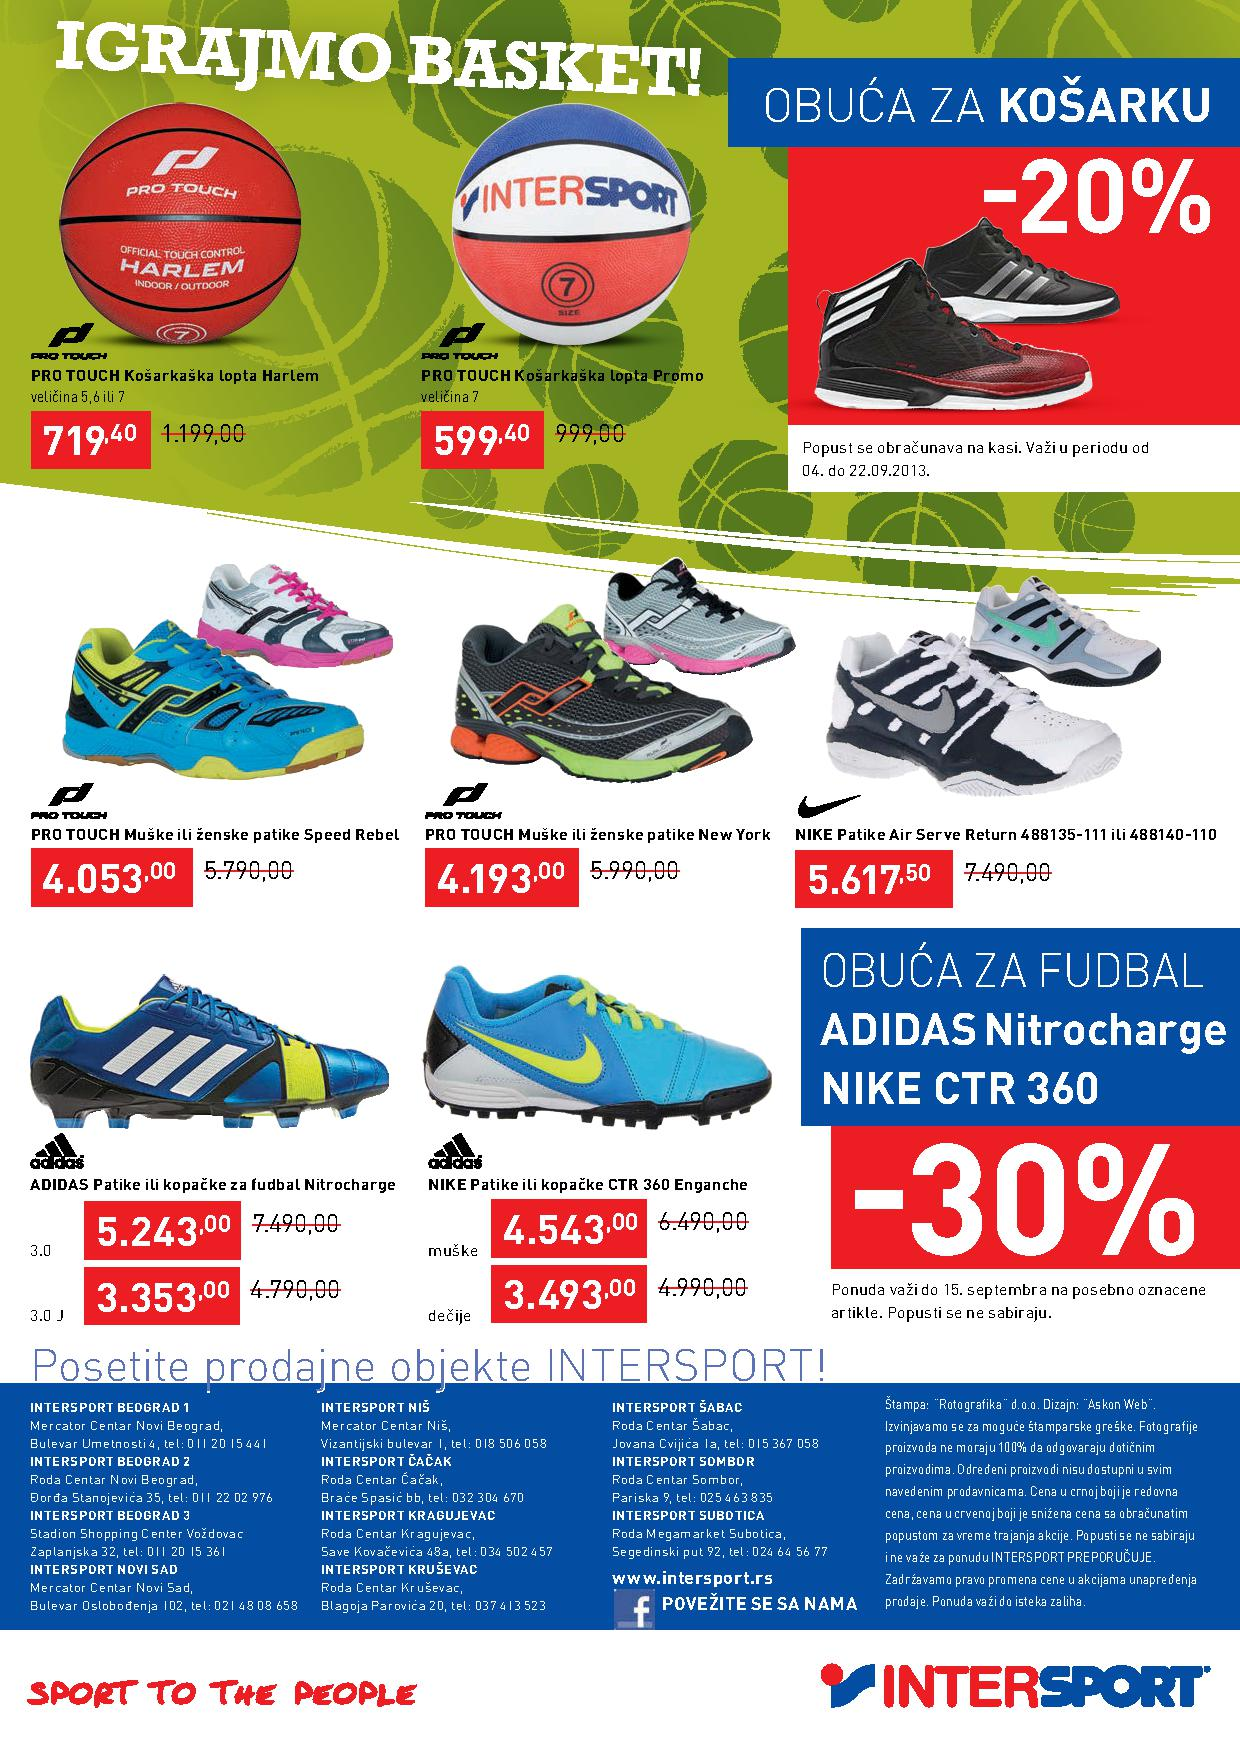 Intersport katalog super cena